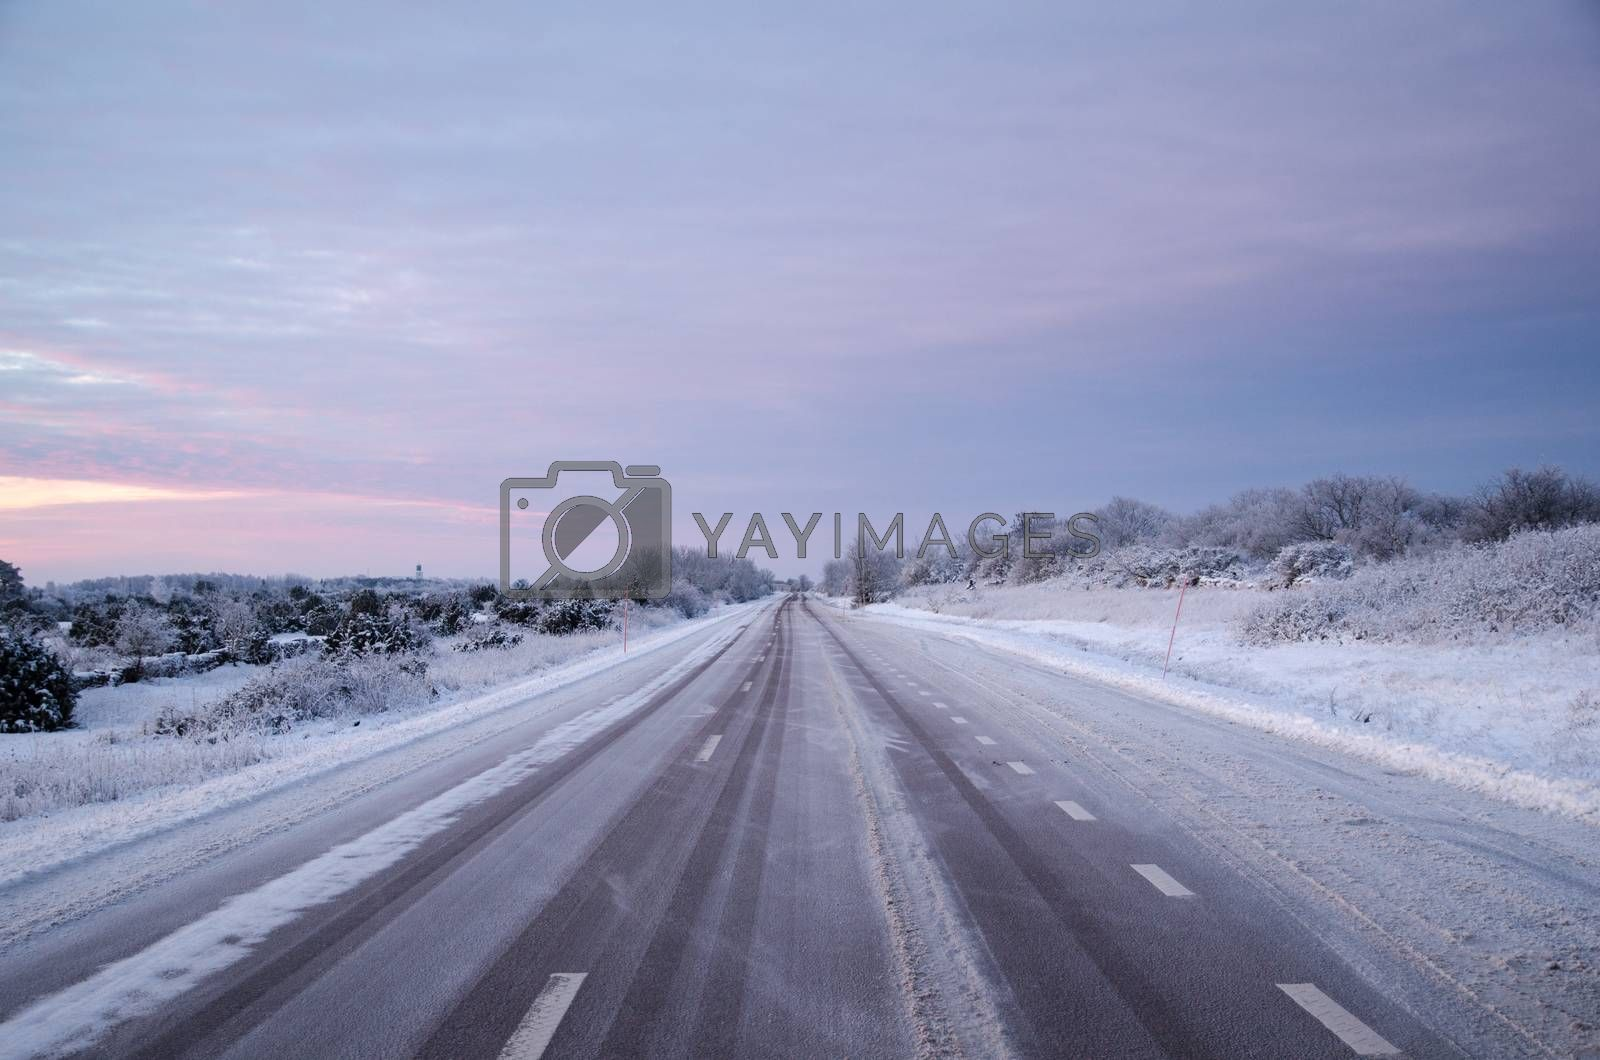 Royalty free image of Snowy asphalt country road by olandsfokus